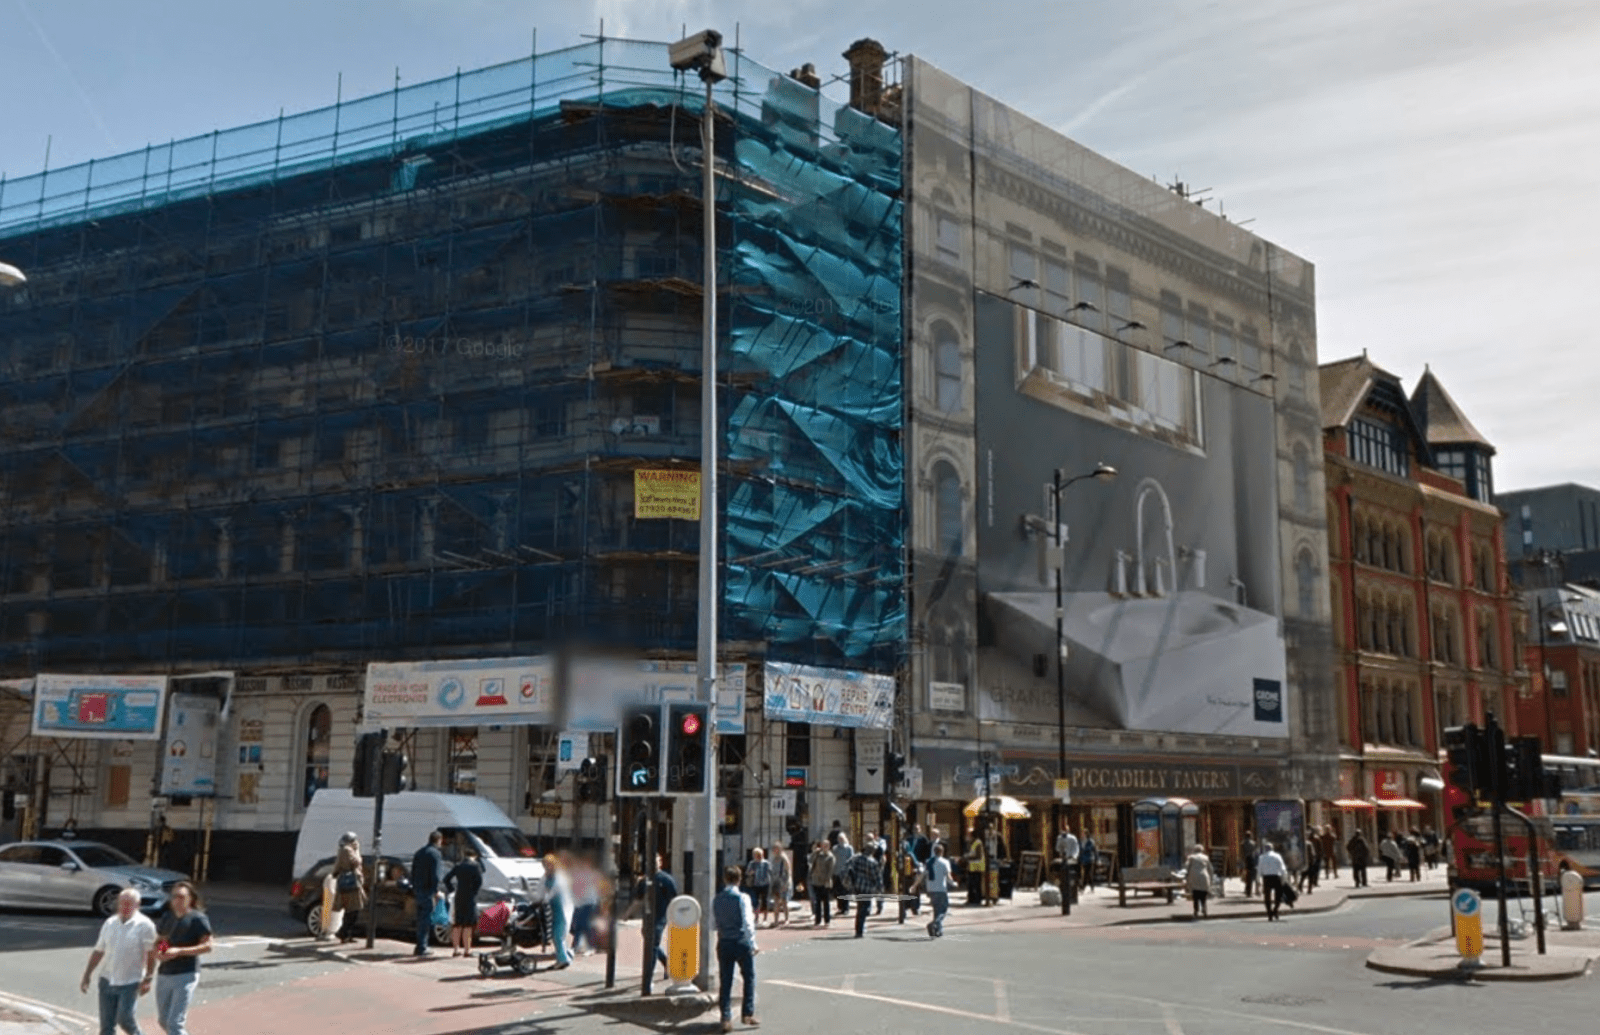 The scaffolding on Newton Street in Manchester city centre is 16 years old today, The Manc